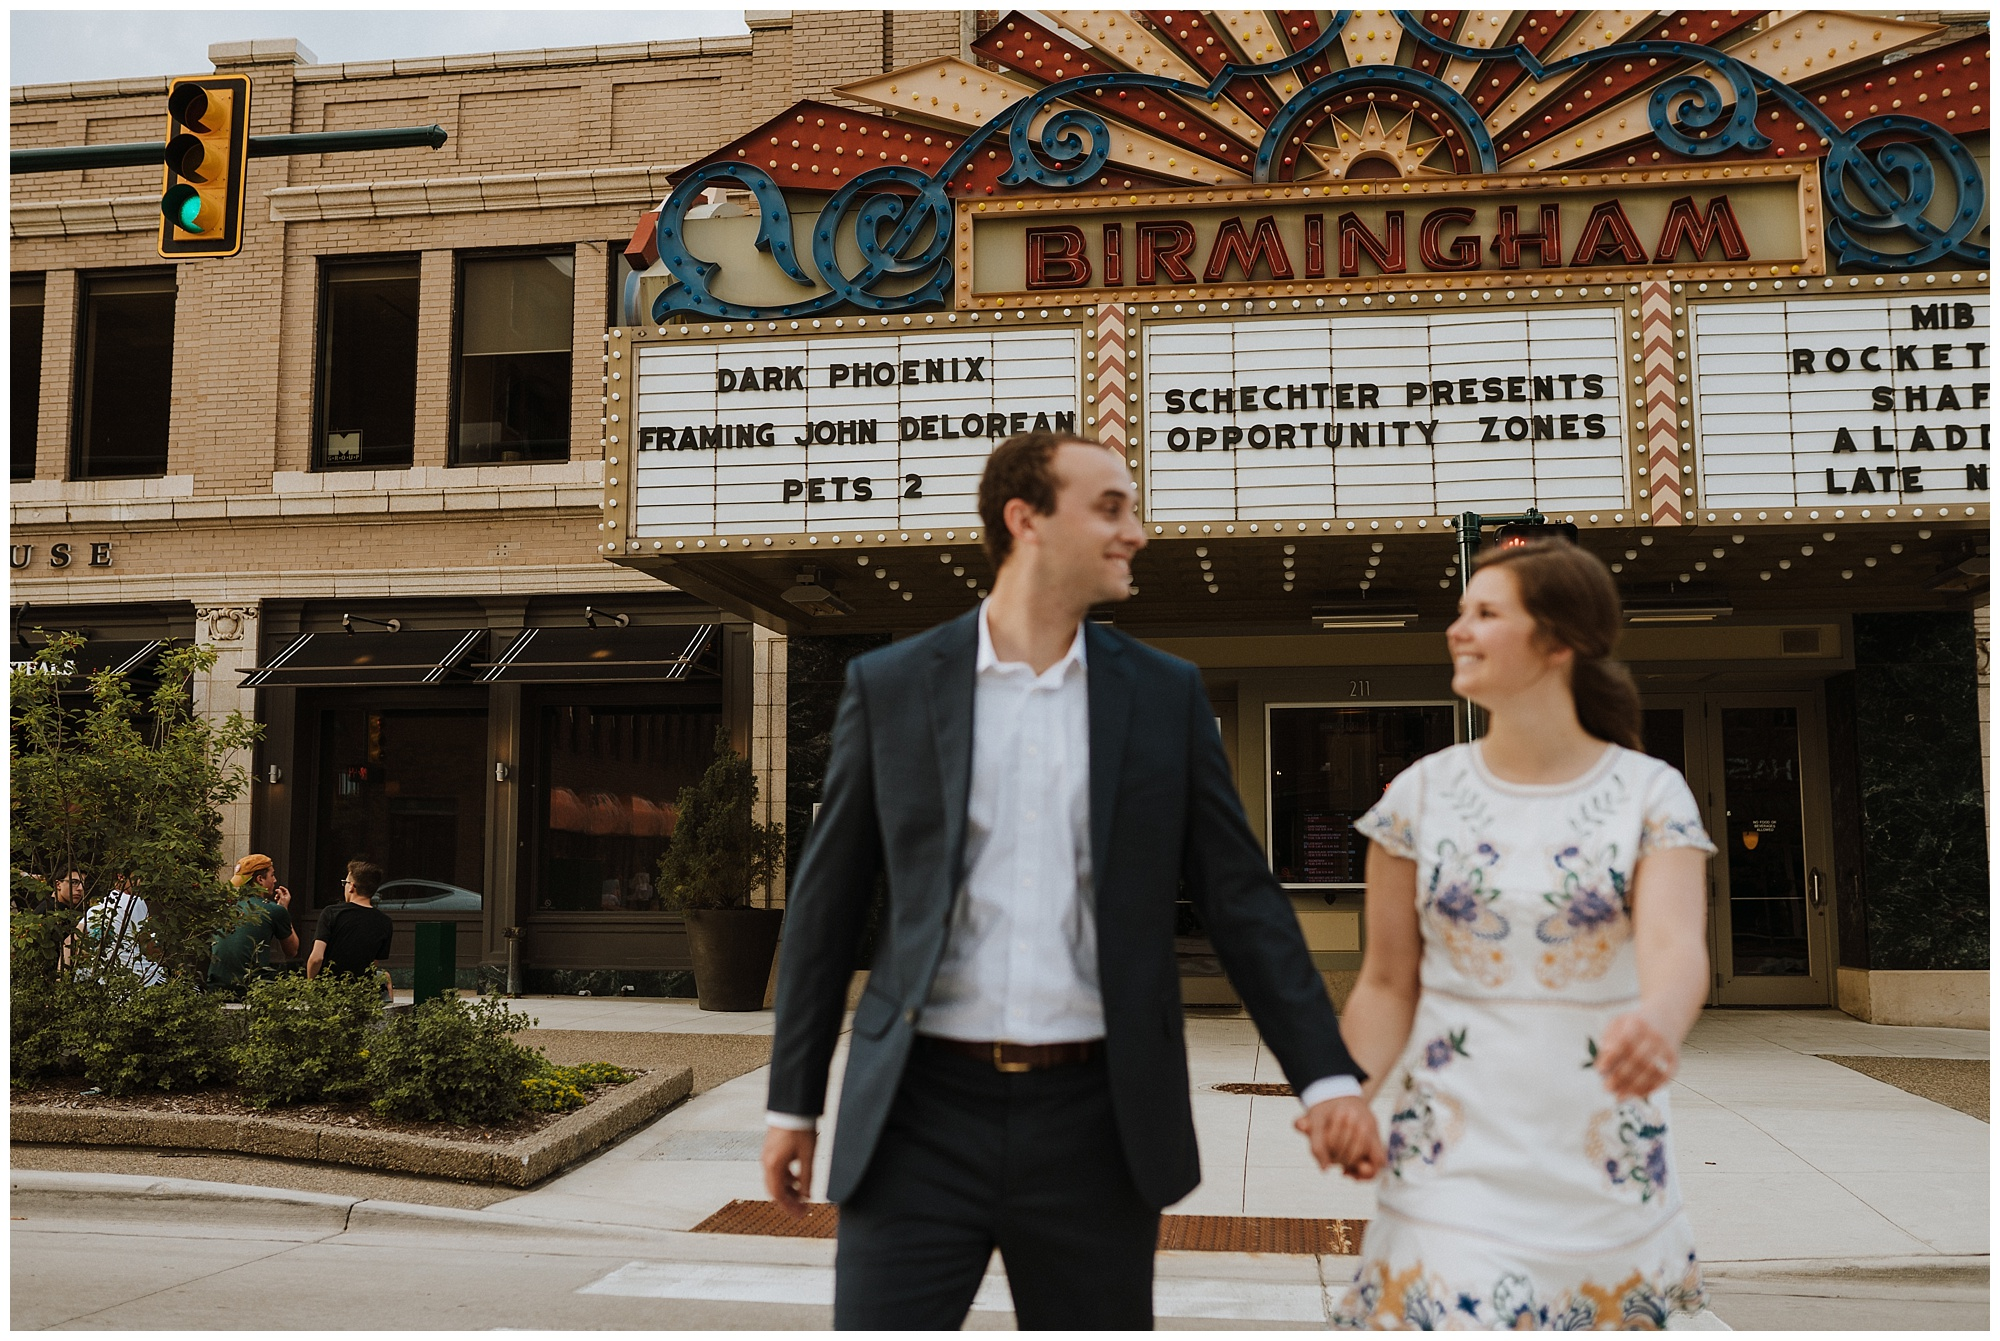 Downtown Birmingham Michigan Engagement Session_0013.jpg